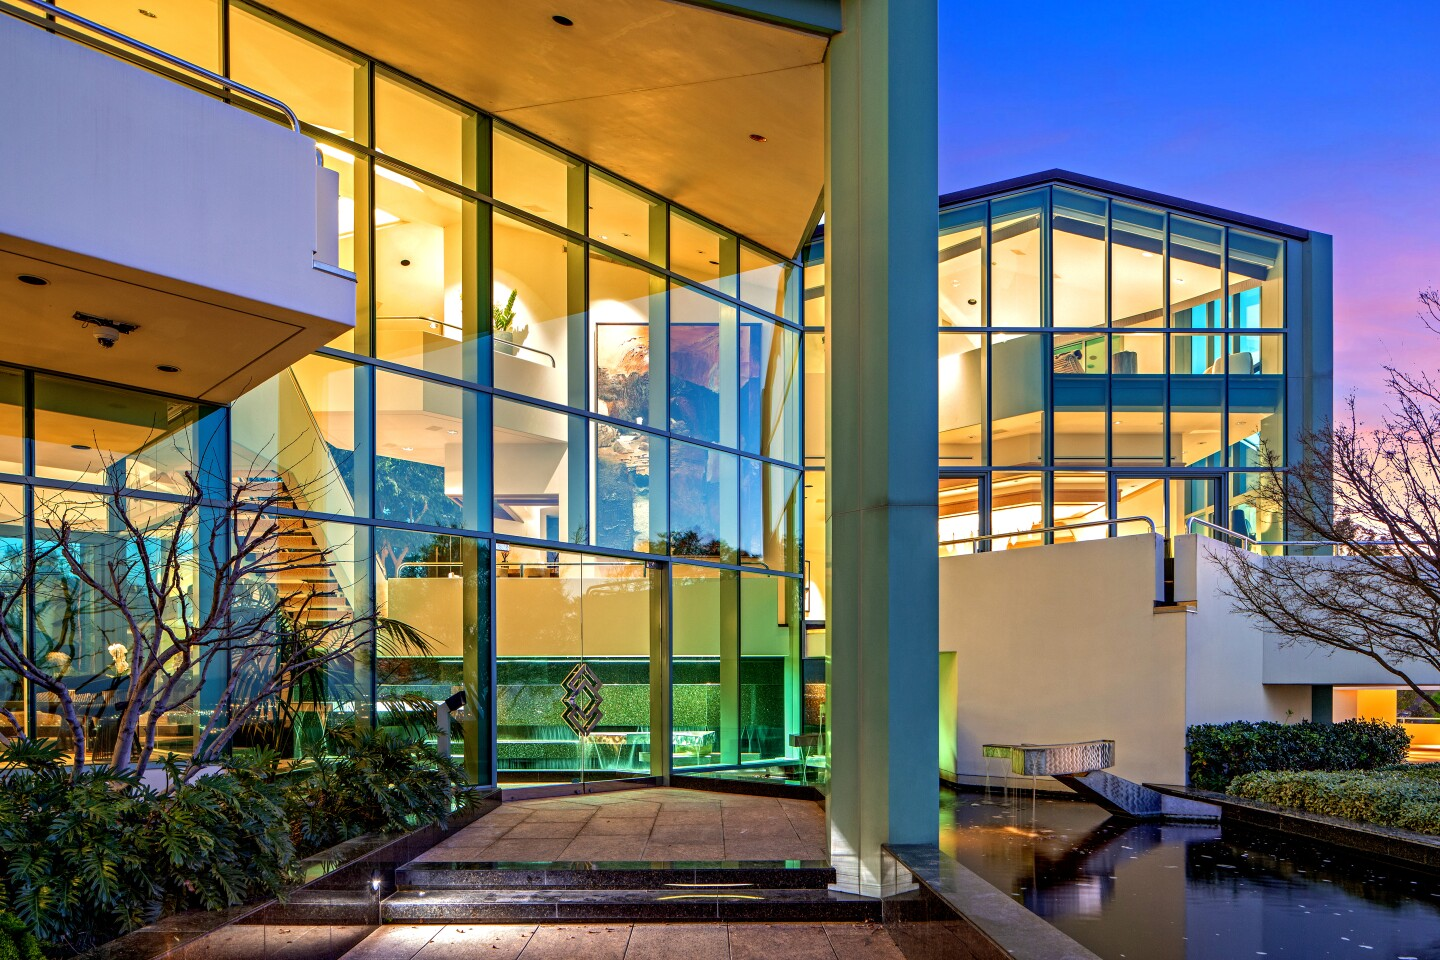 Grammy-winning artists Pharrell is asking $16.95 million for the ultra-modern compound he bought two years ago from filmmaker Tyler Perry. Set on four acres in the Beverly Hills Post Office area, the glass mansion dazzles with its pyramid-shaped skylights, angled walls ands steel beams. At the heart of the house is an atrium-like common area that features a reflecting pool, a great room and a dining room with a crystal rock chandelier.